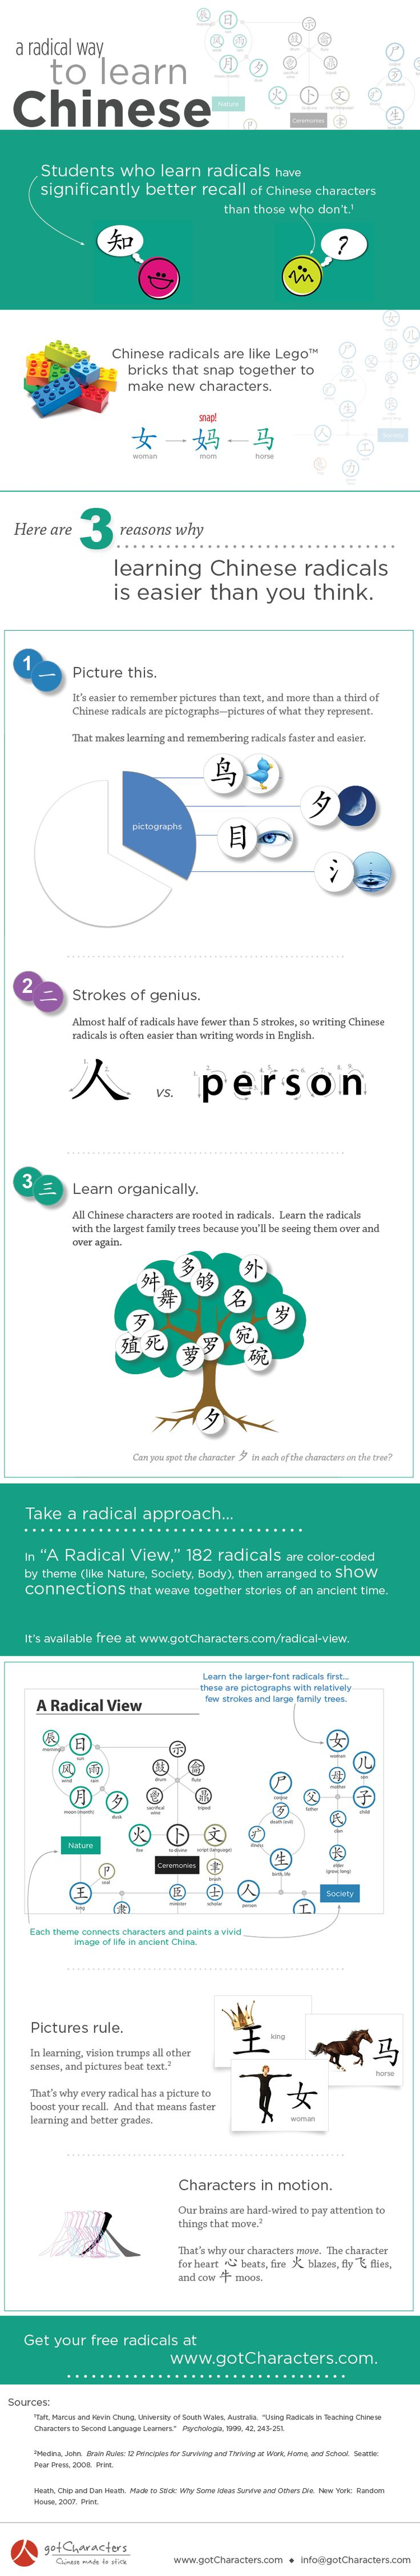 How Do People in China Learn to Write Chinese Characters?